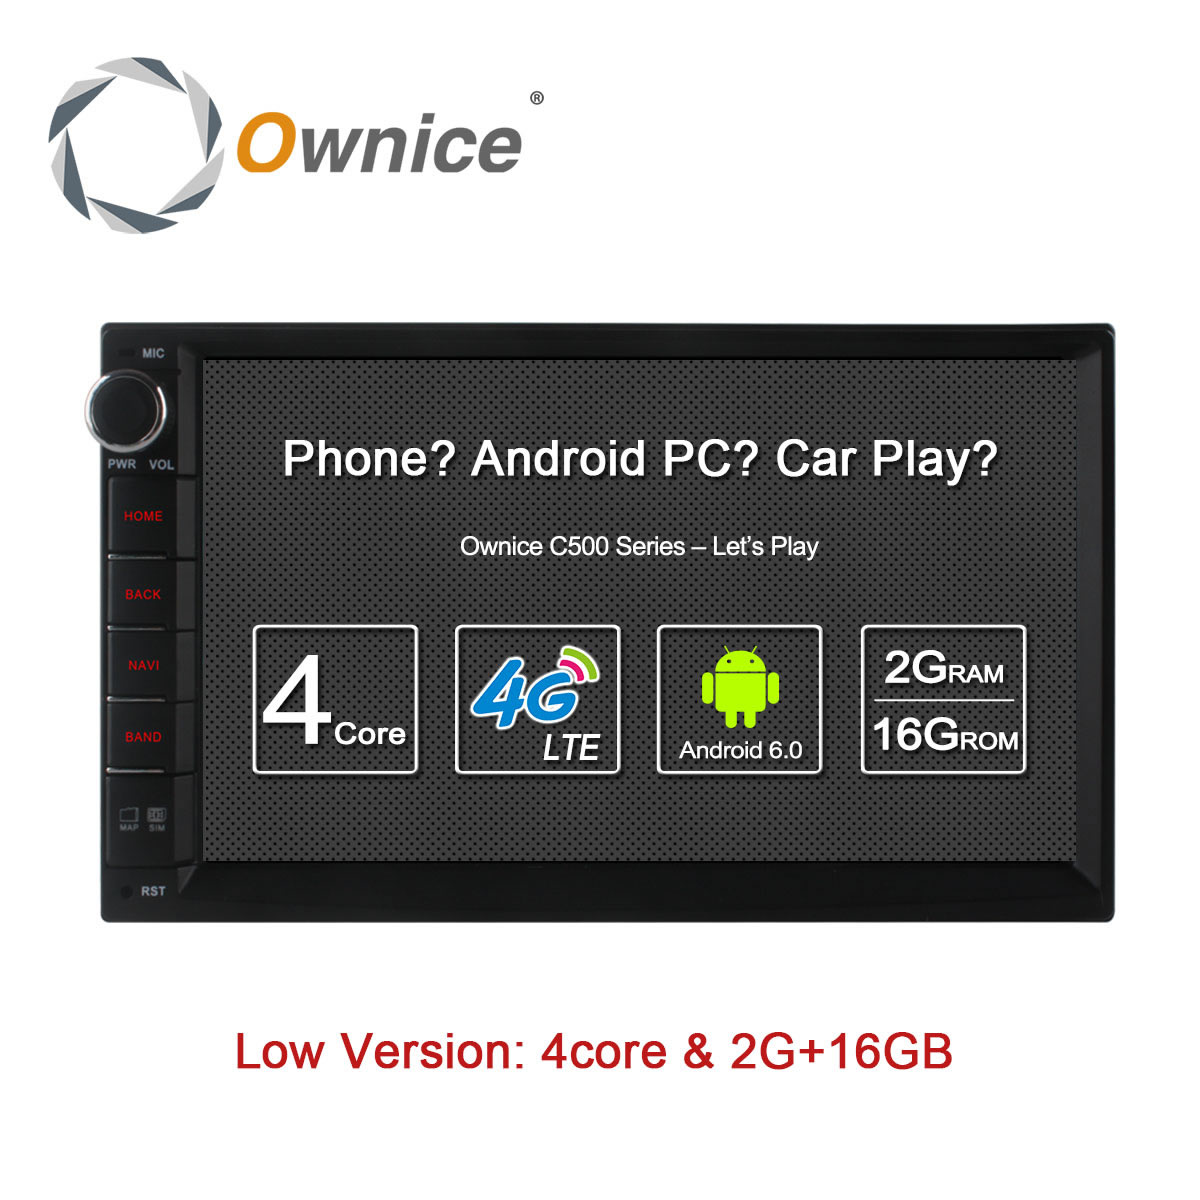 Ownice C500 Octa 8 Core Android 6 0 2G RAM 32GB ROM Support 4G LTE SIM ownice c500 octa 8 core android 6 0 2g ram 32gb rom support 4g lte  at readyjetset.co